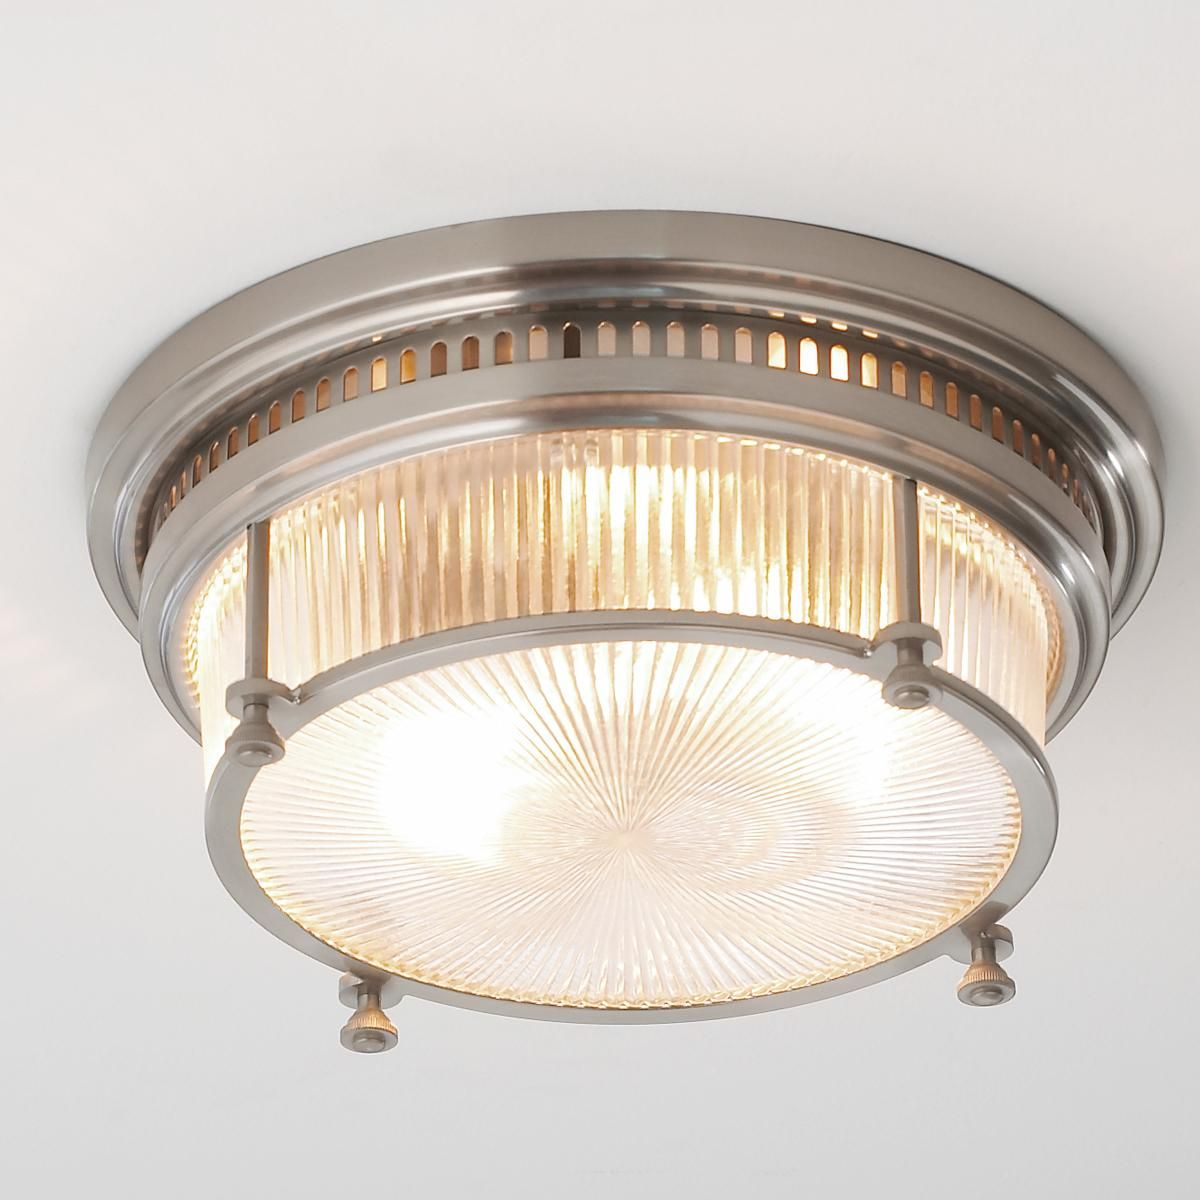 Inspirational Flush Mount Hall Lighting